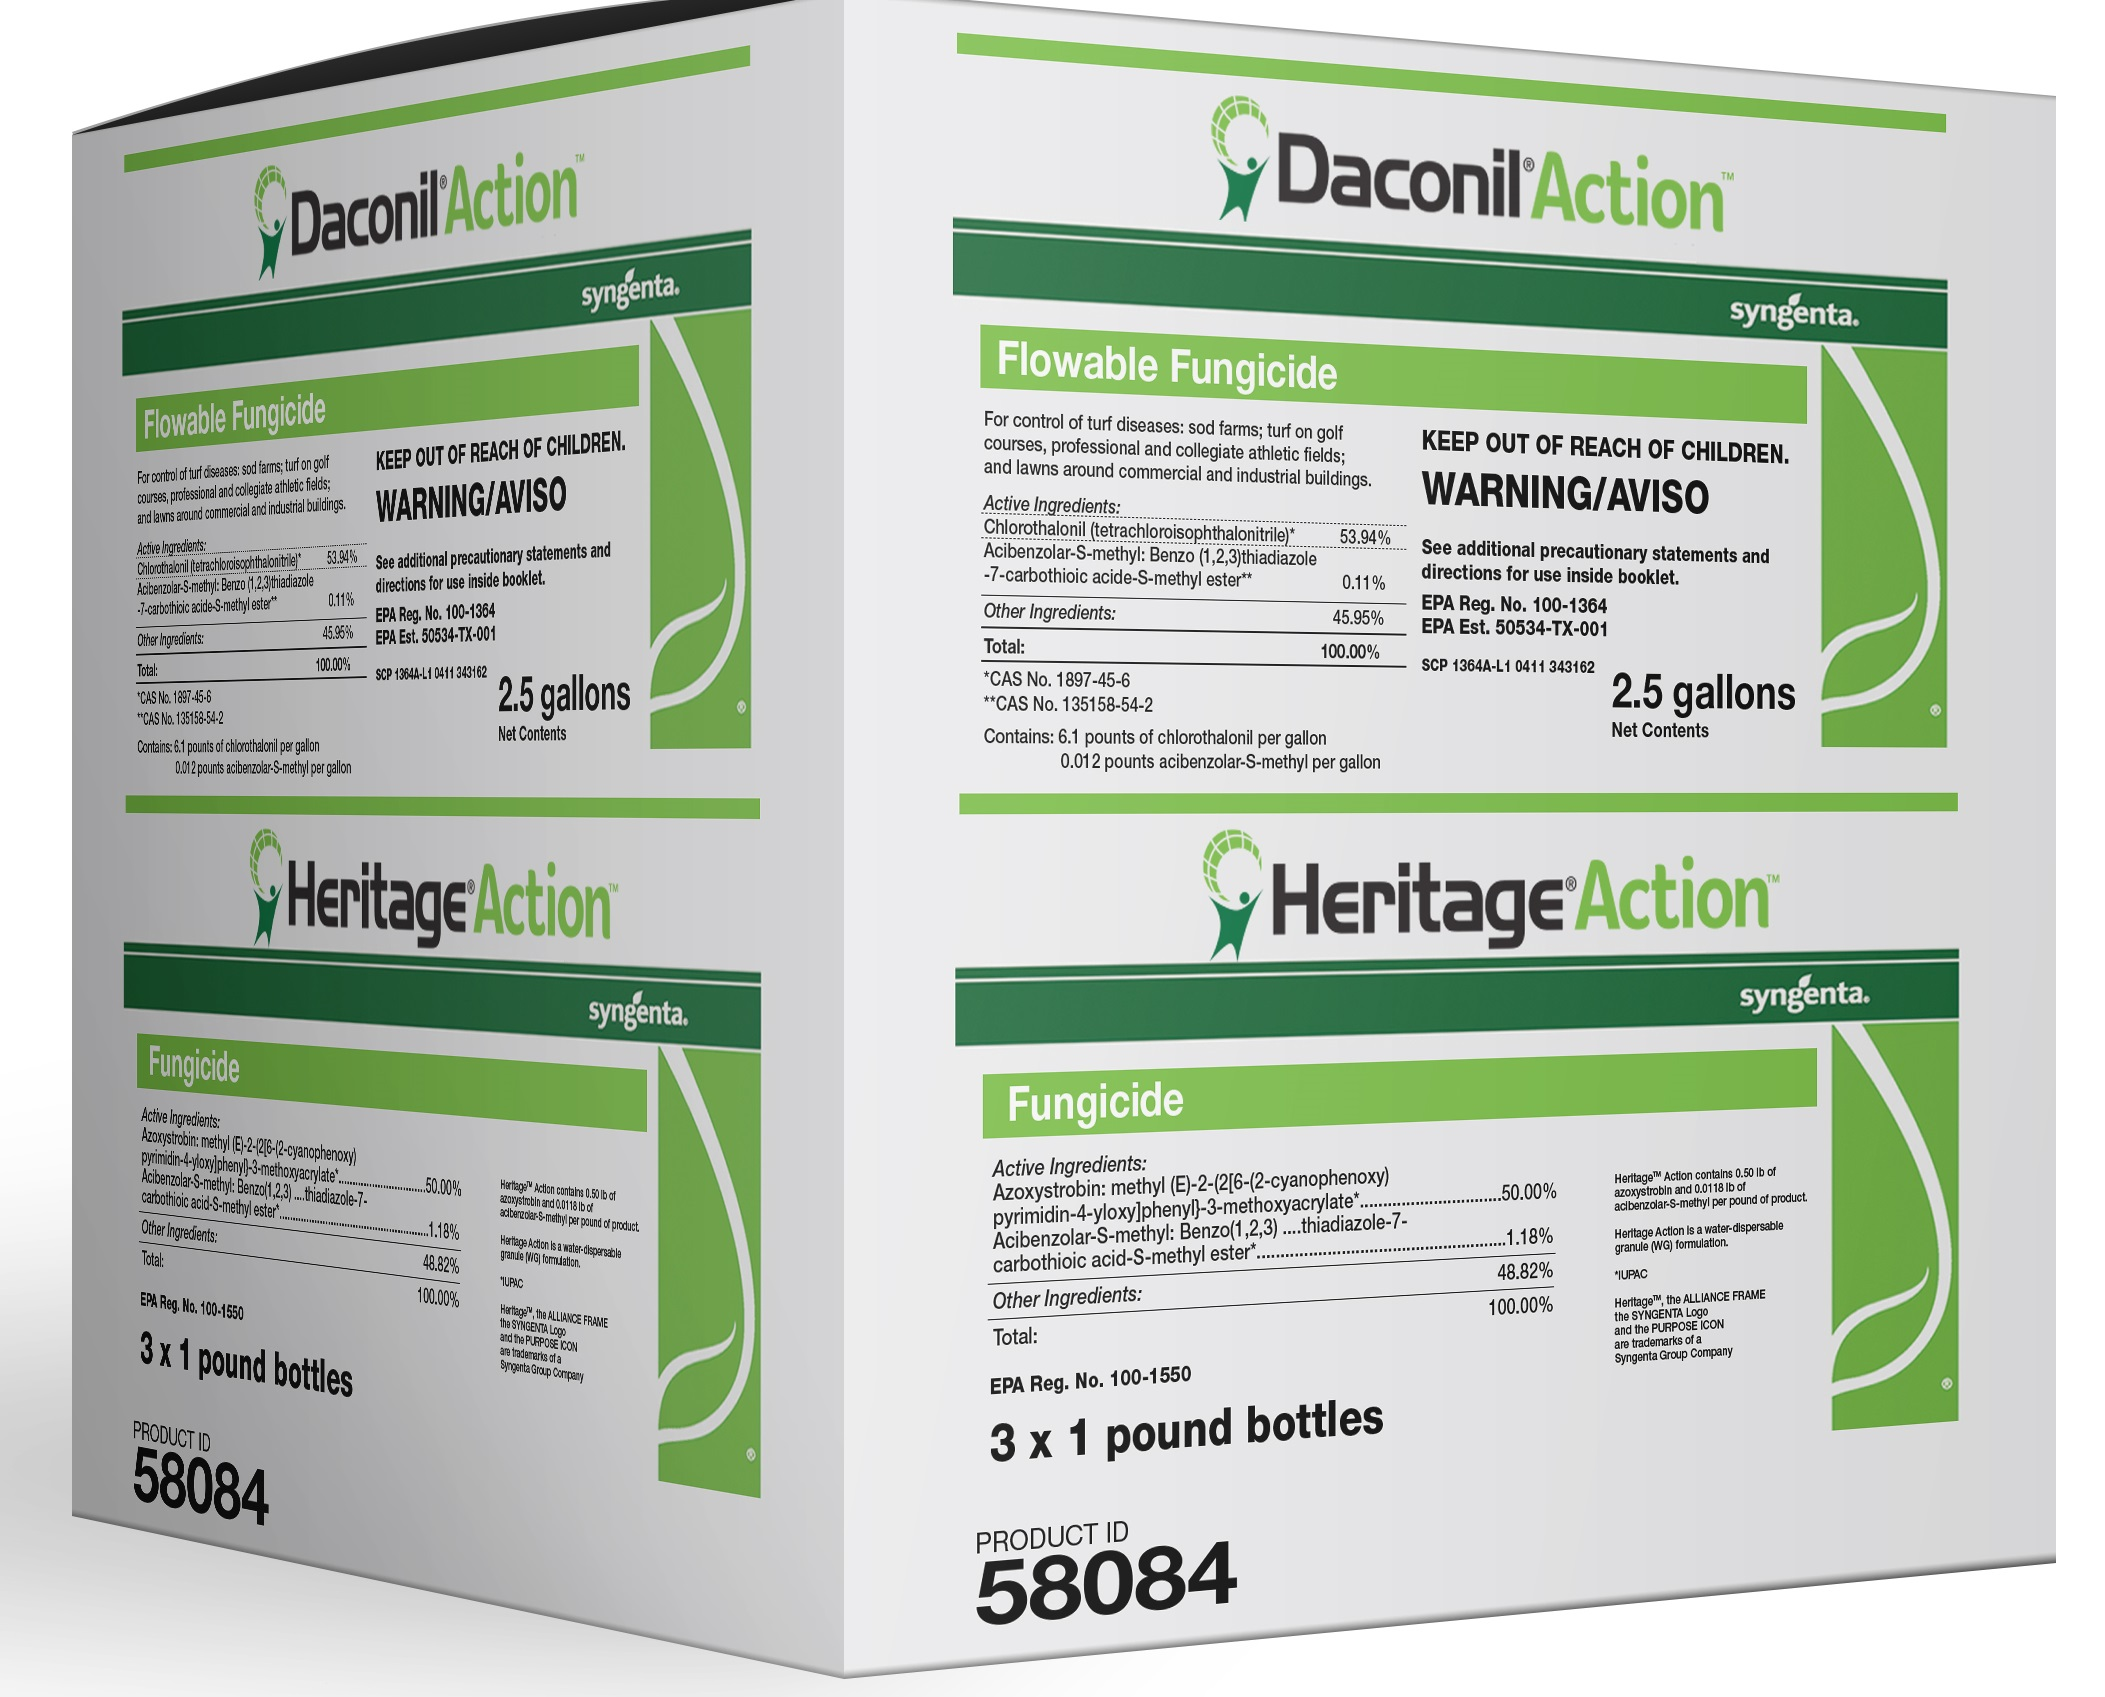 Daconil and Heritage Action.